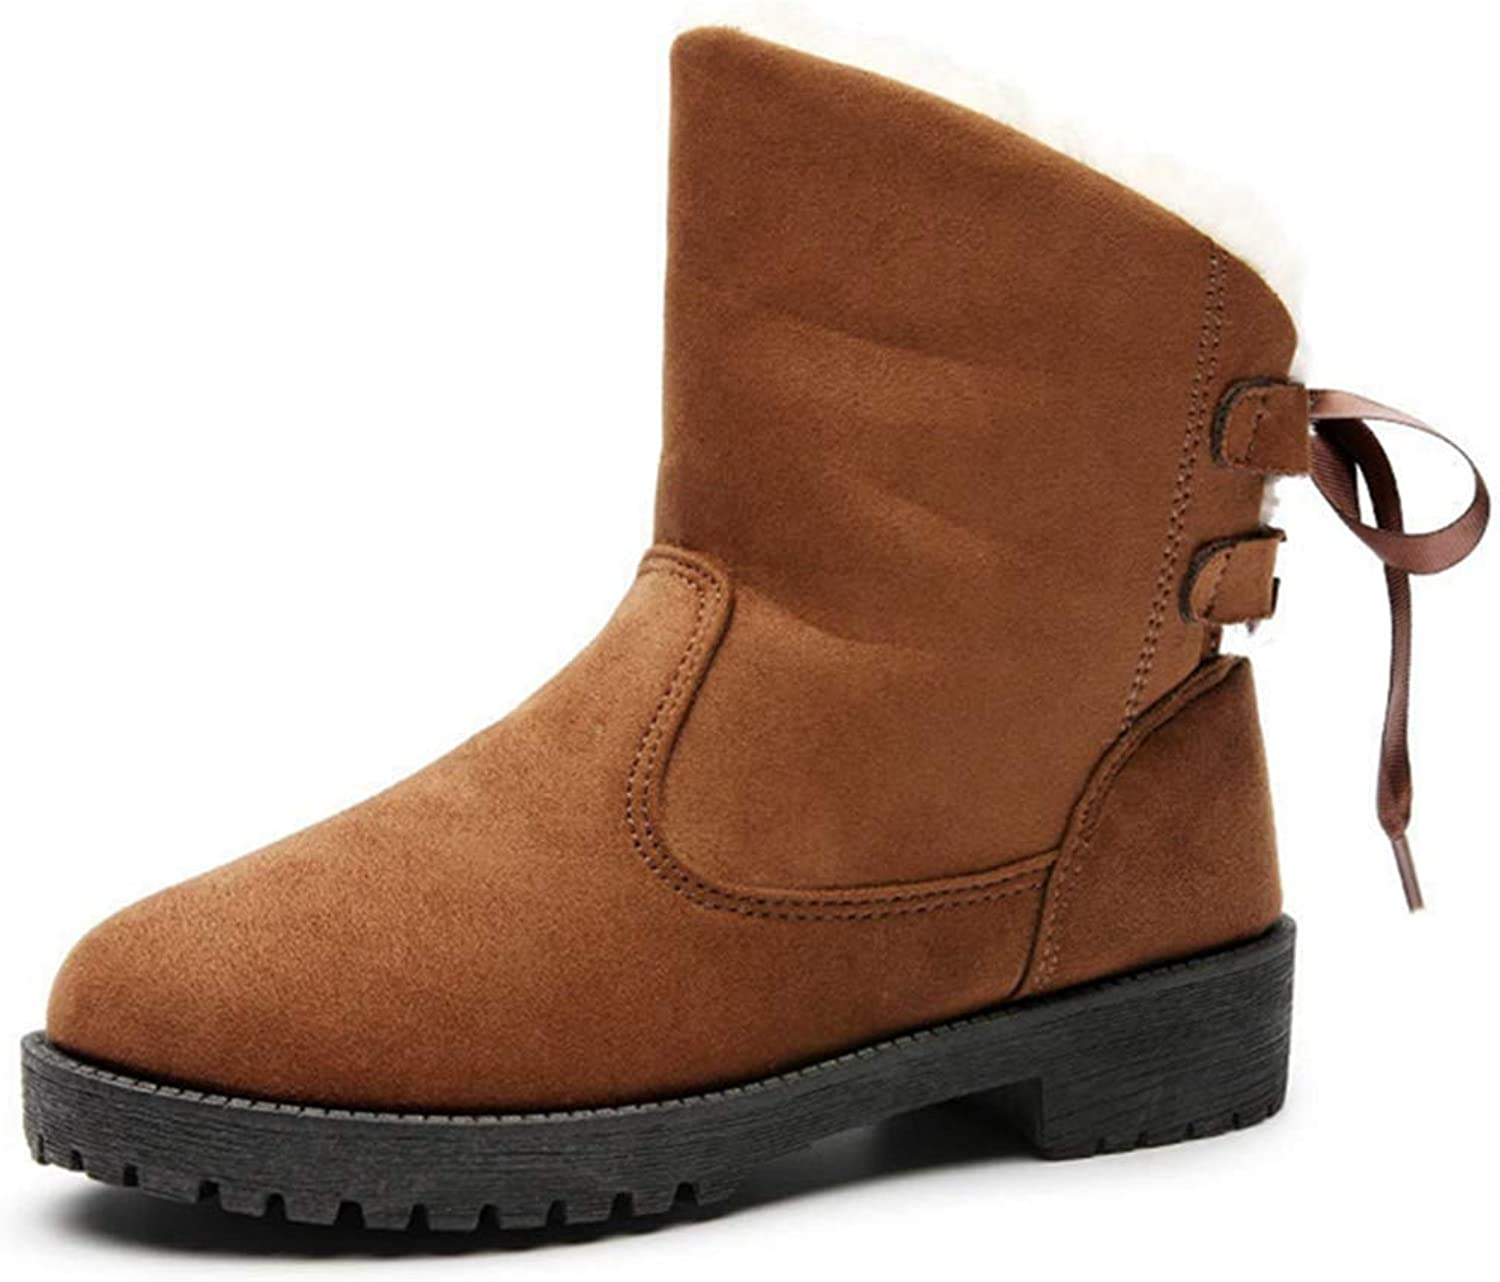 GIY Women's Suede Warm Snow Boots Comfortable Slip On Square Heel Winter Outdoor Snow Ankle Booties